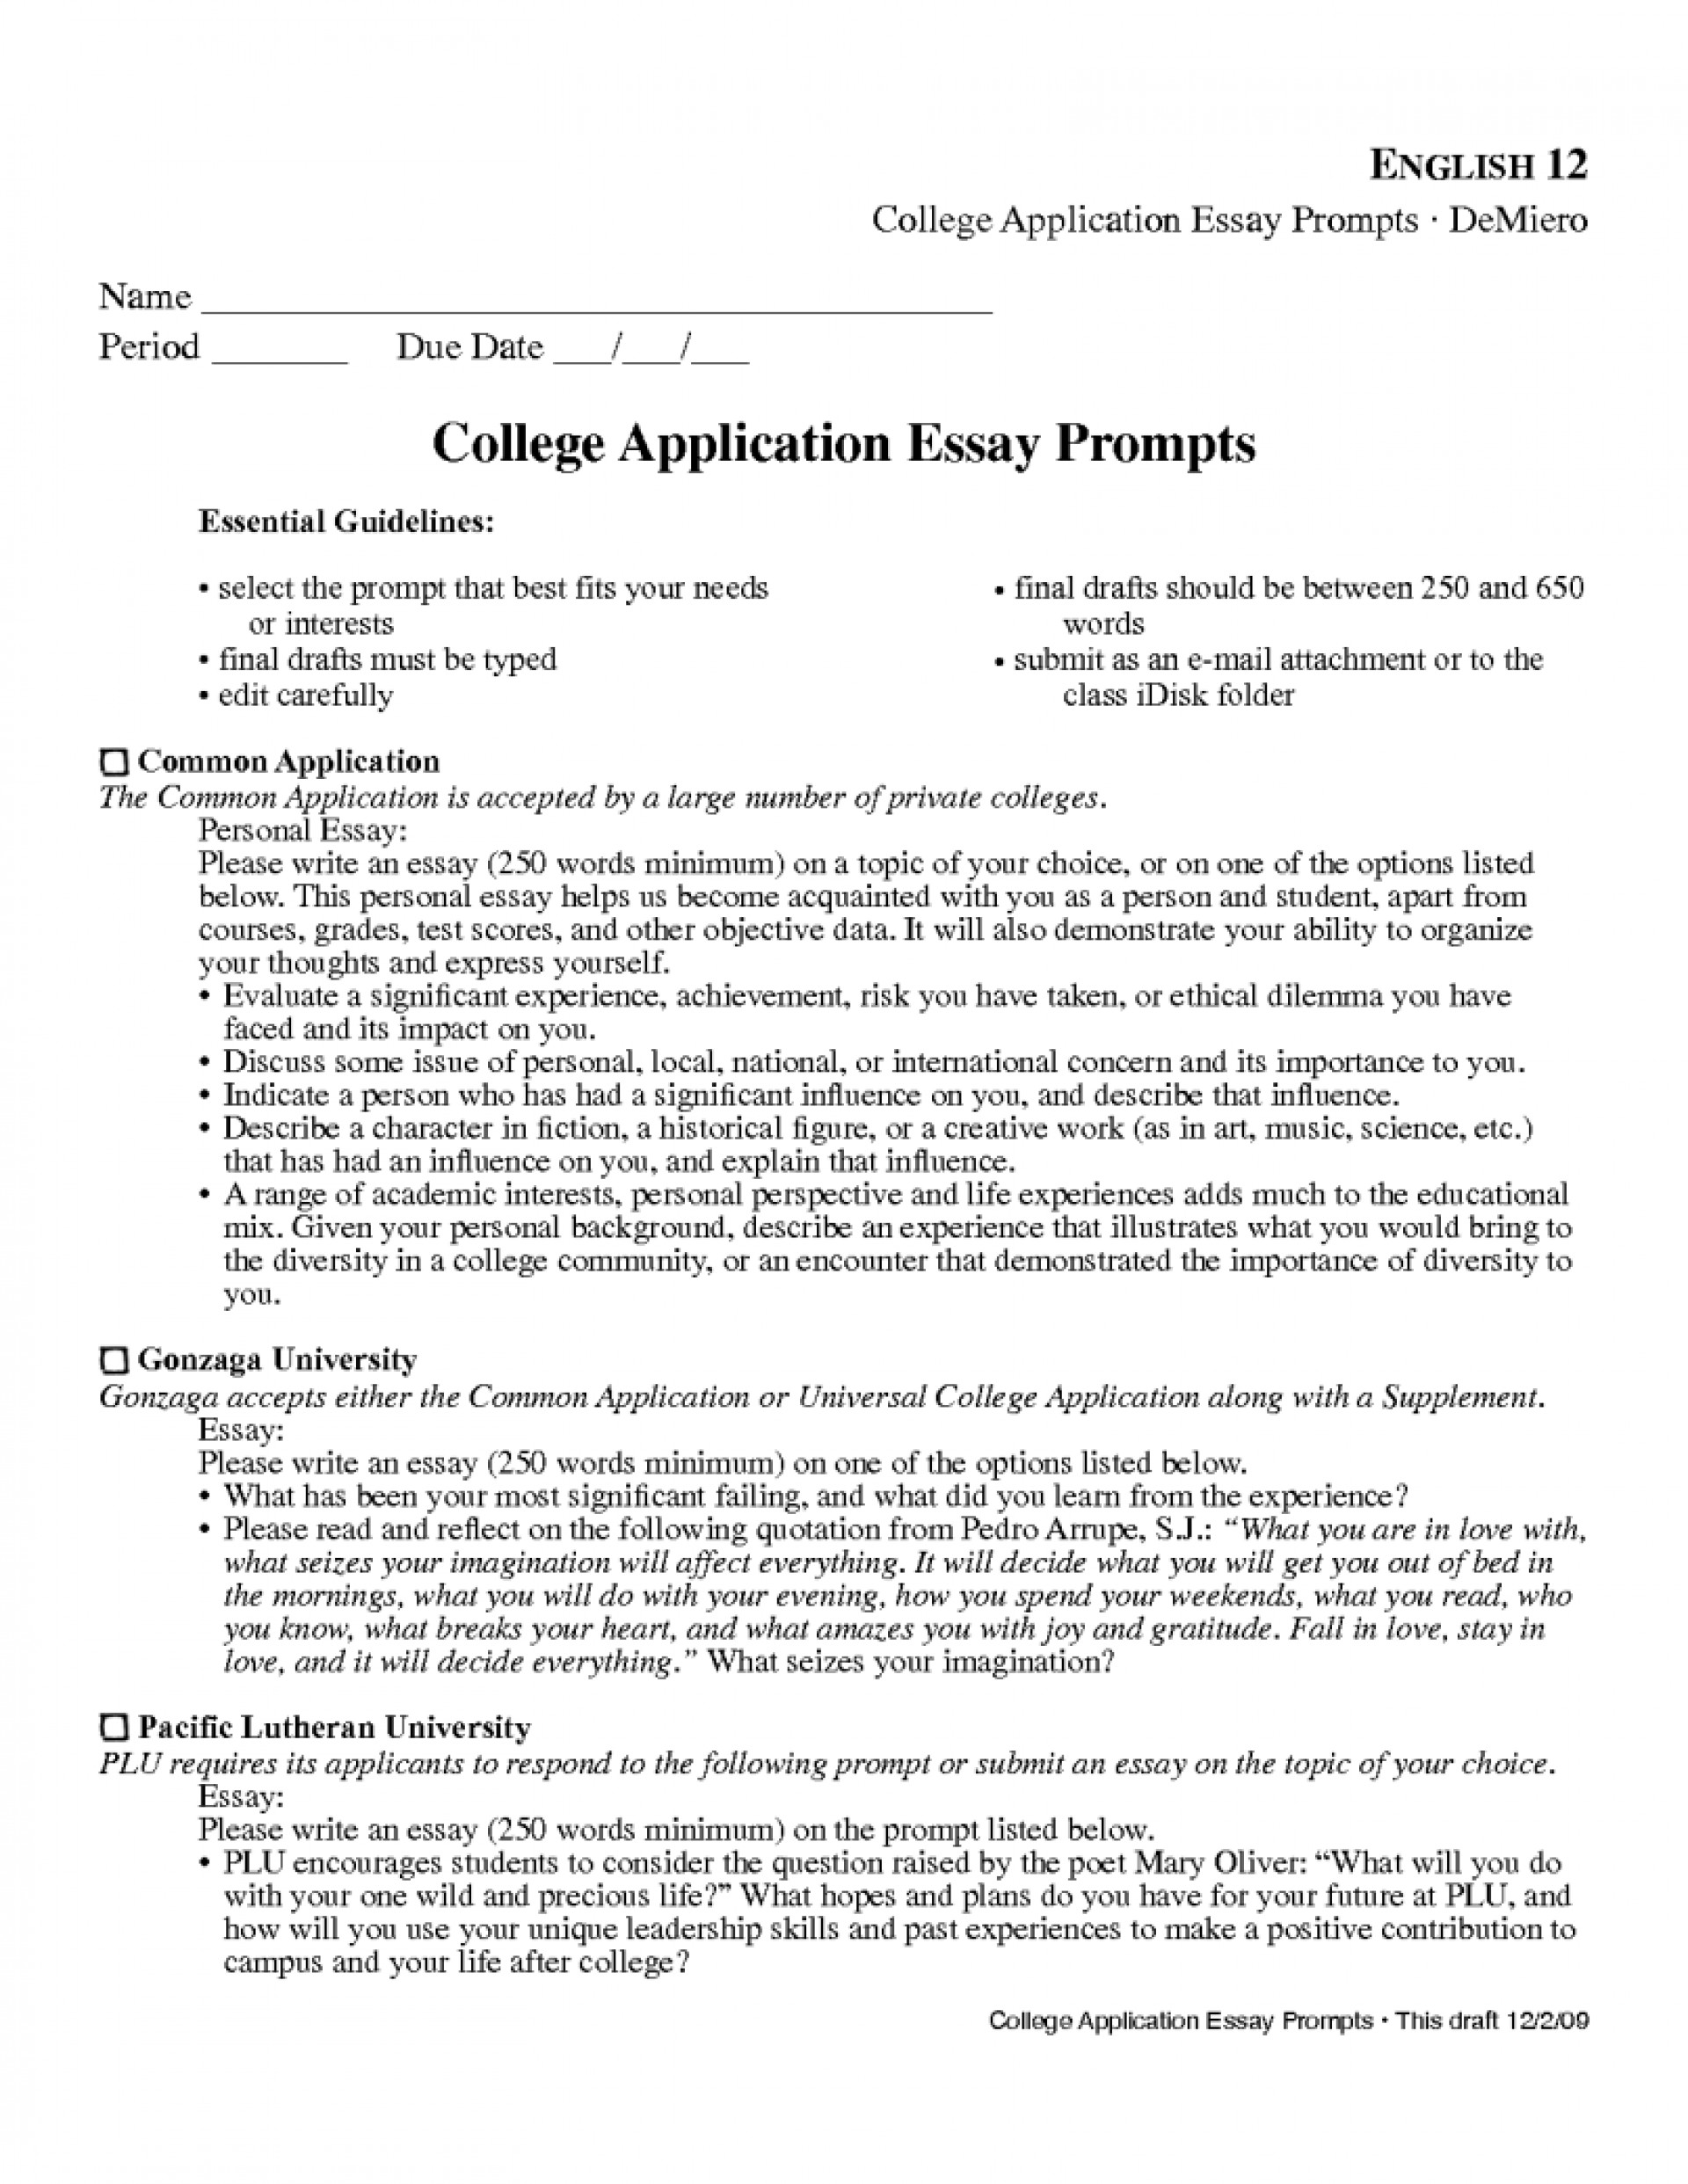 001 Essay Example College Prompts The Common App Poemdoc Or Best Using Quotes In Essays Quotesgram Admission L Ucf Prompt Boston Uc Harvard Texas Mit Unique 2017 1920